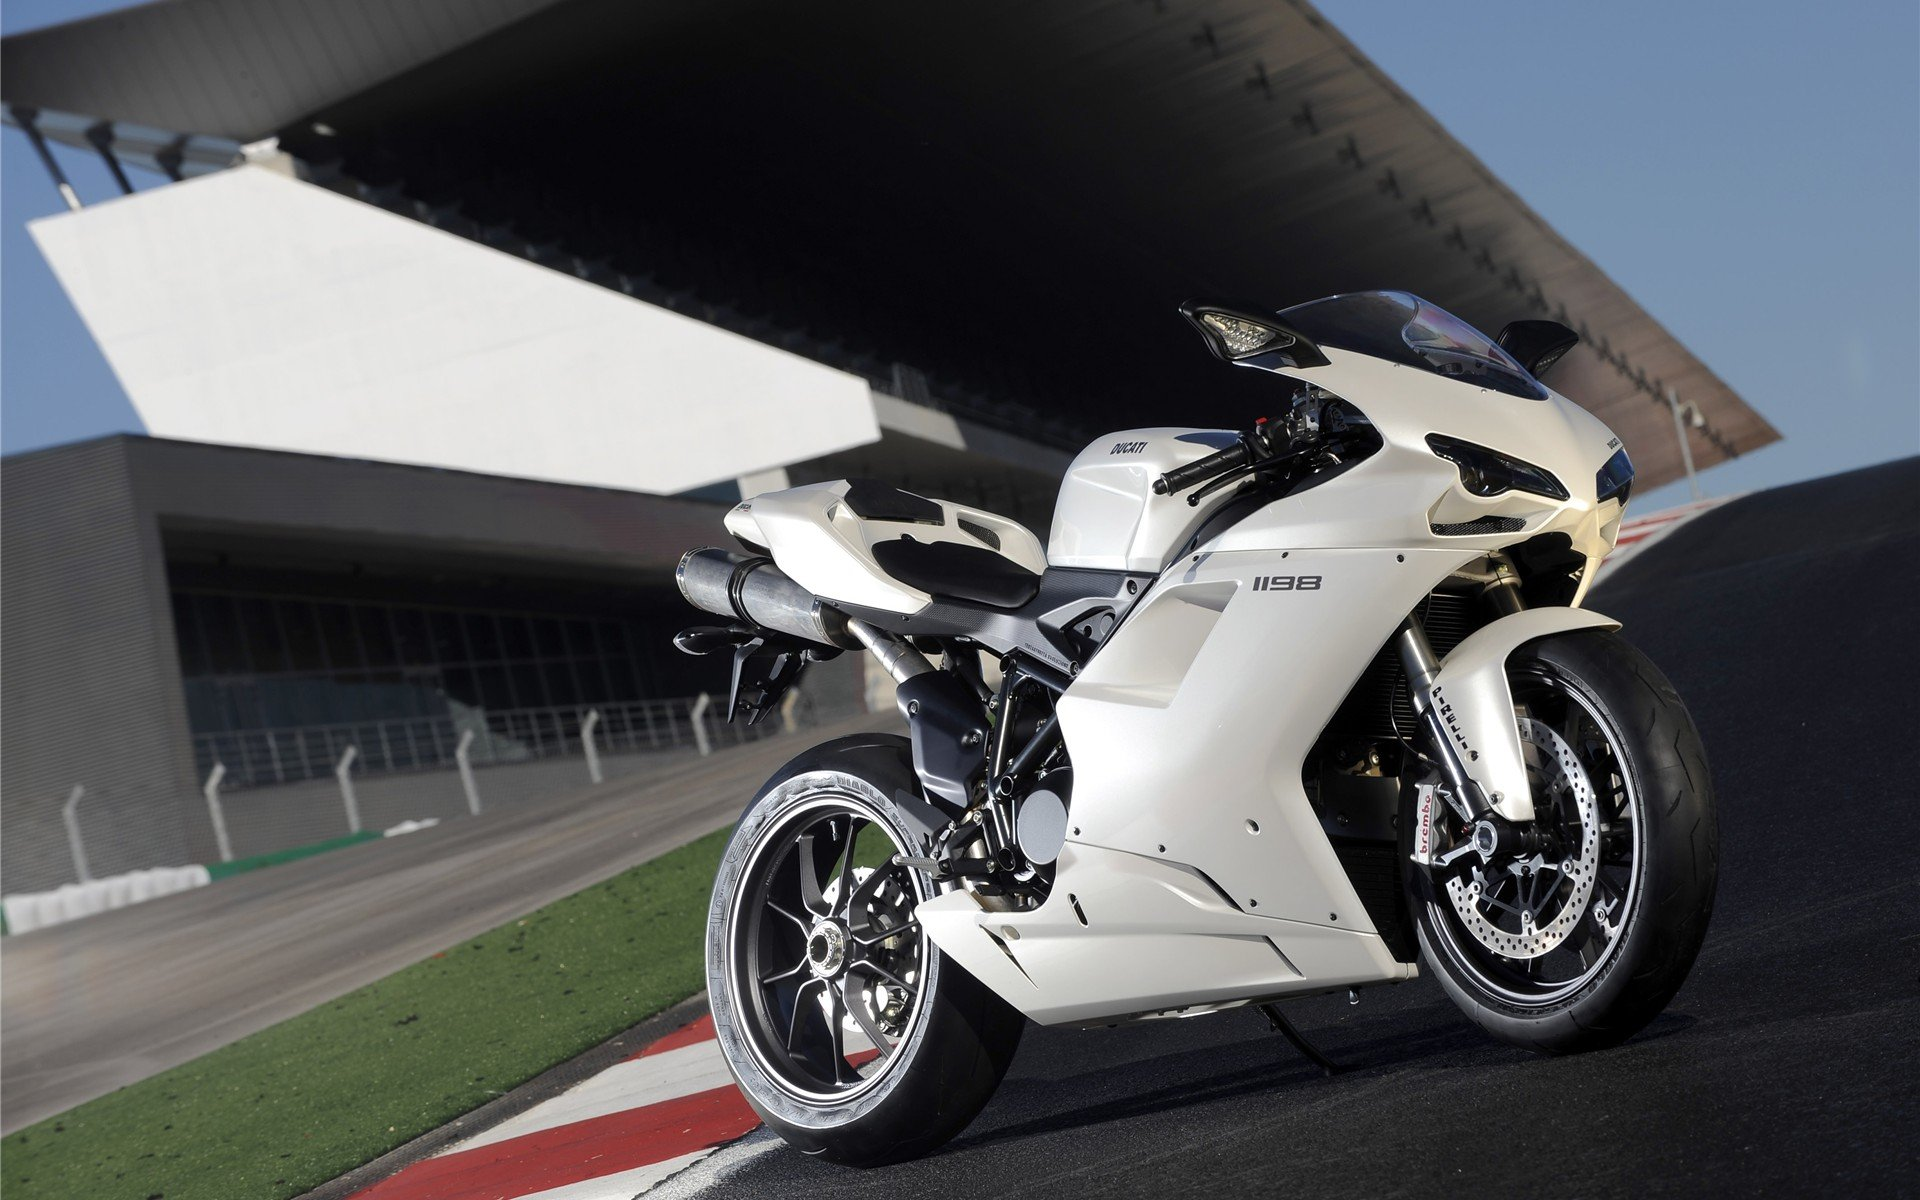 Ducati 1198 Wallpapers HD Wallpapers 1920x1200